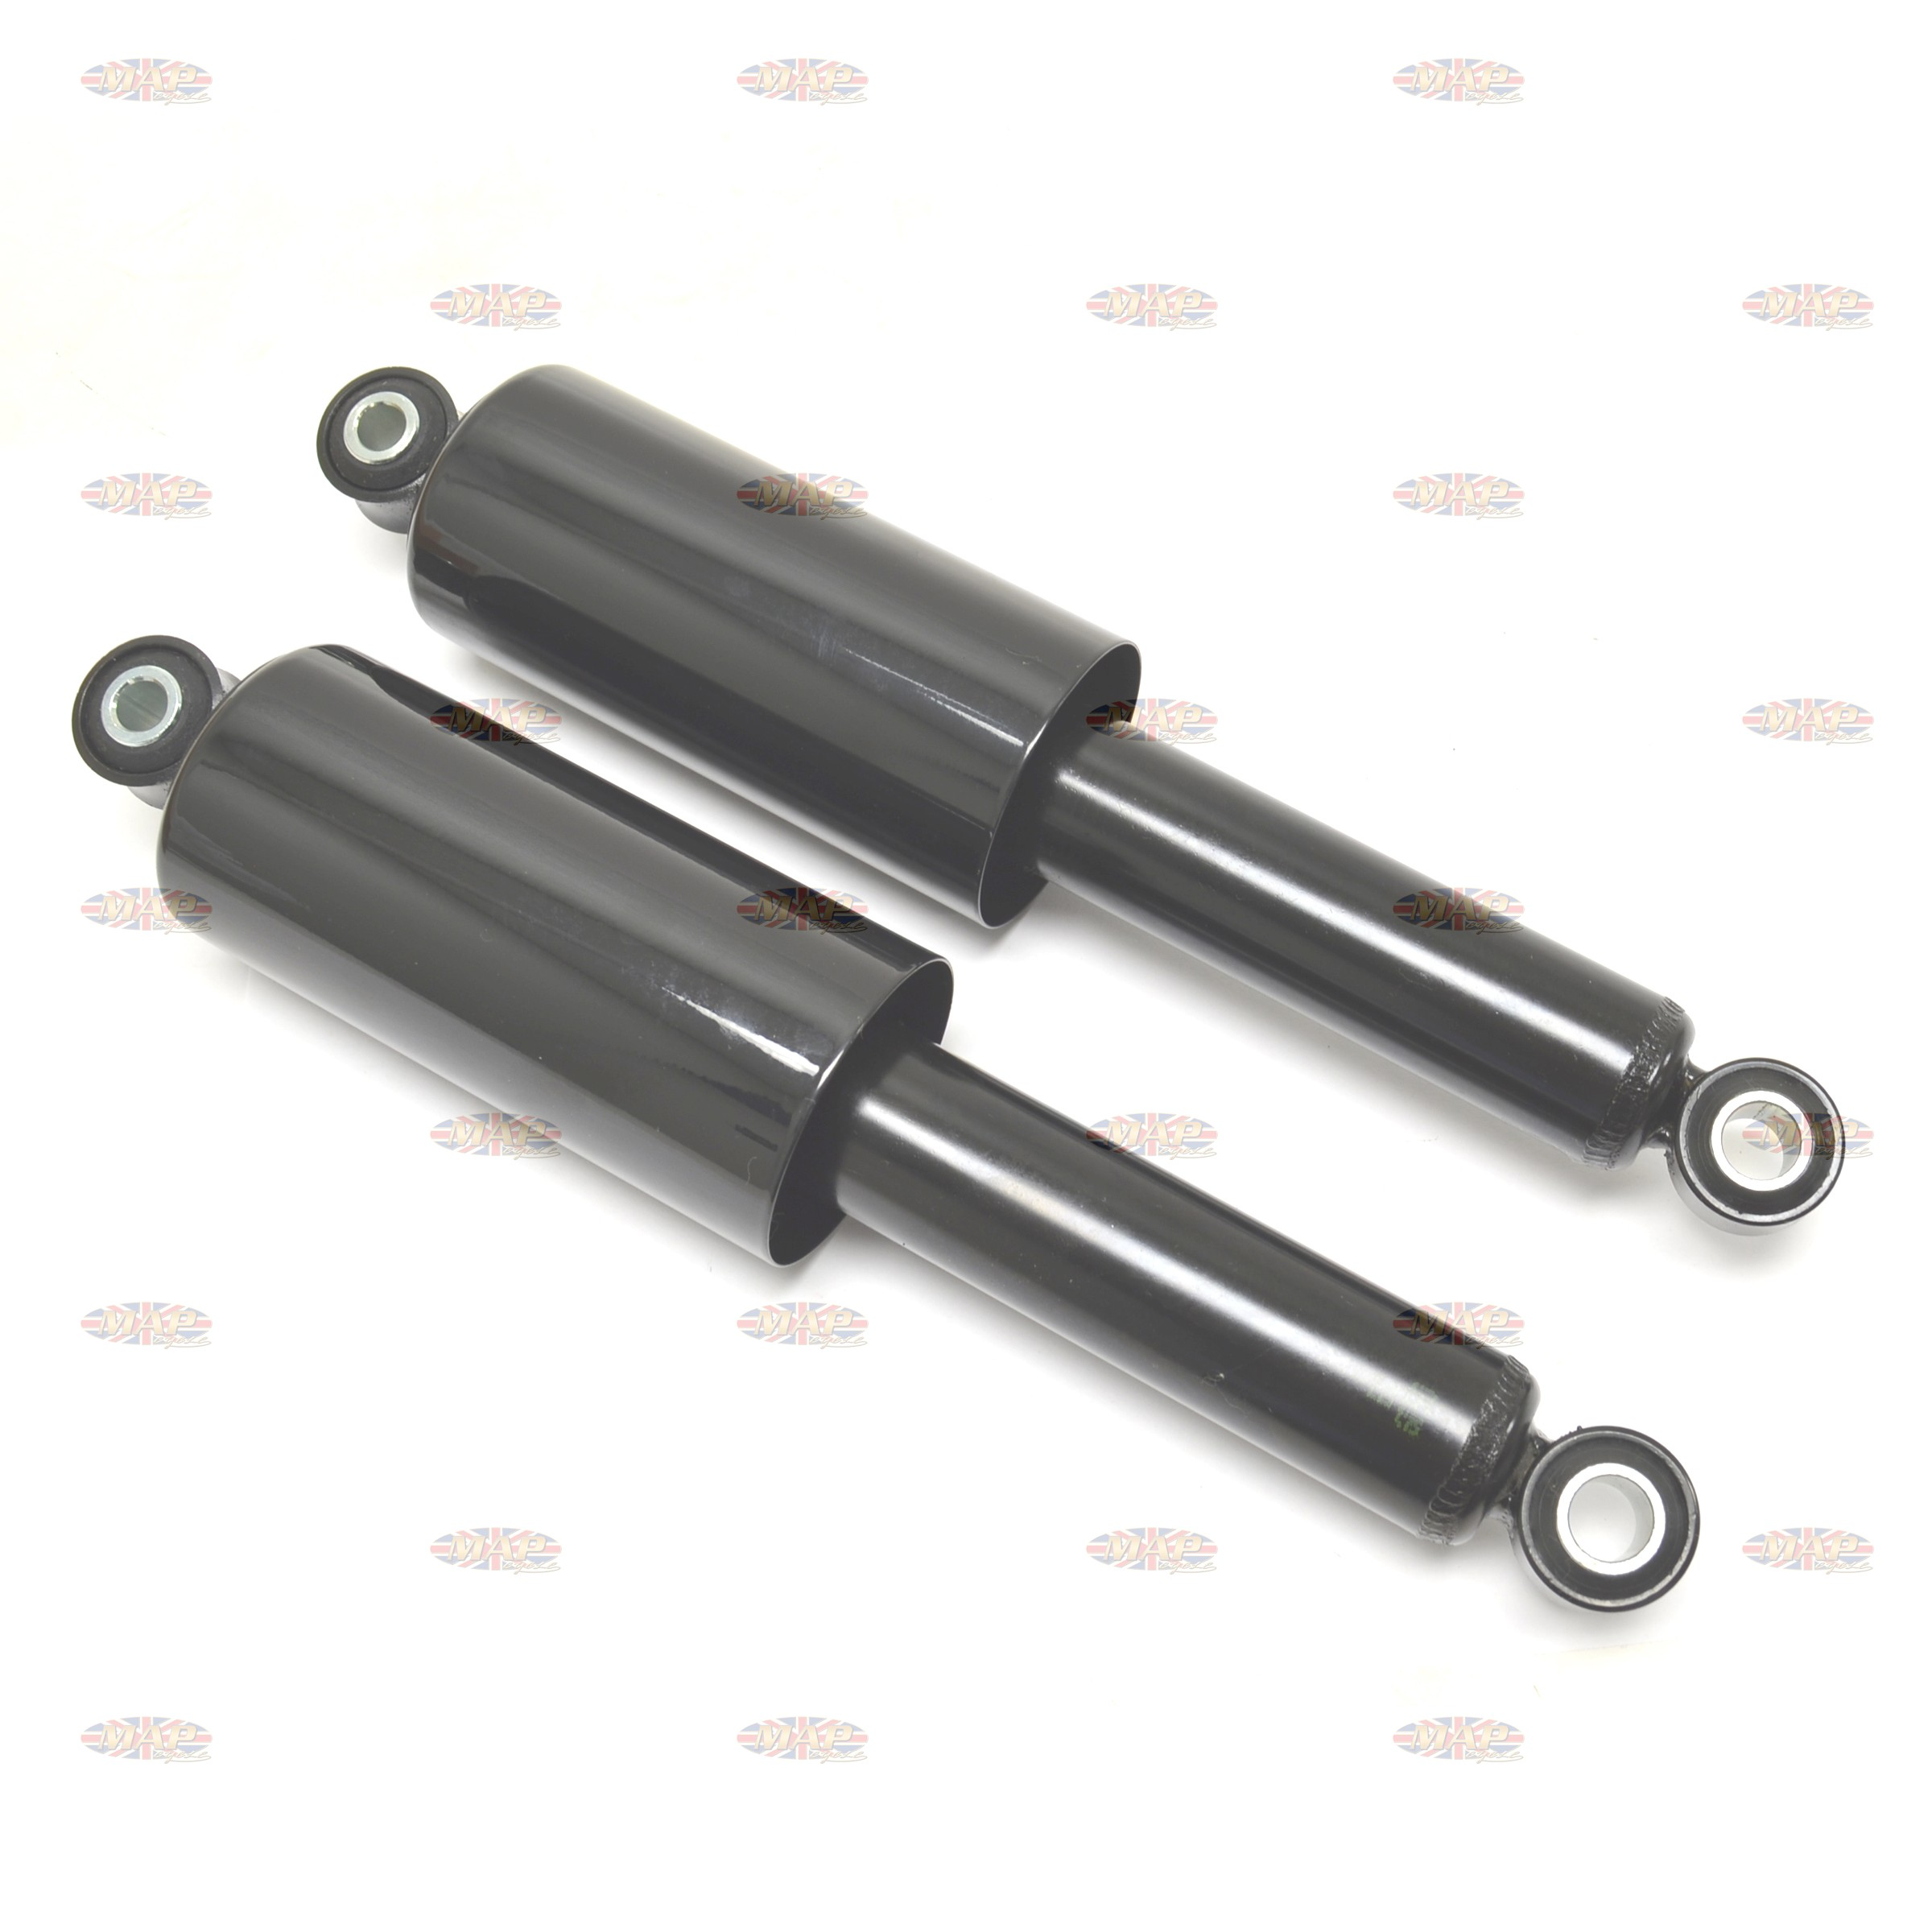 BSA Bantam D7, D10, D14 Shock Absorber Set 17-05688